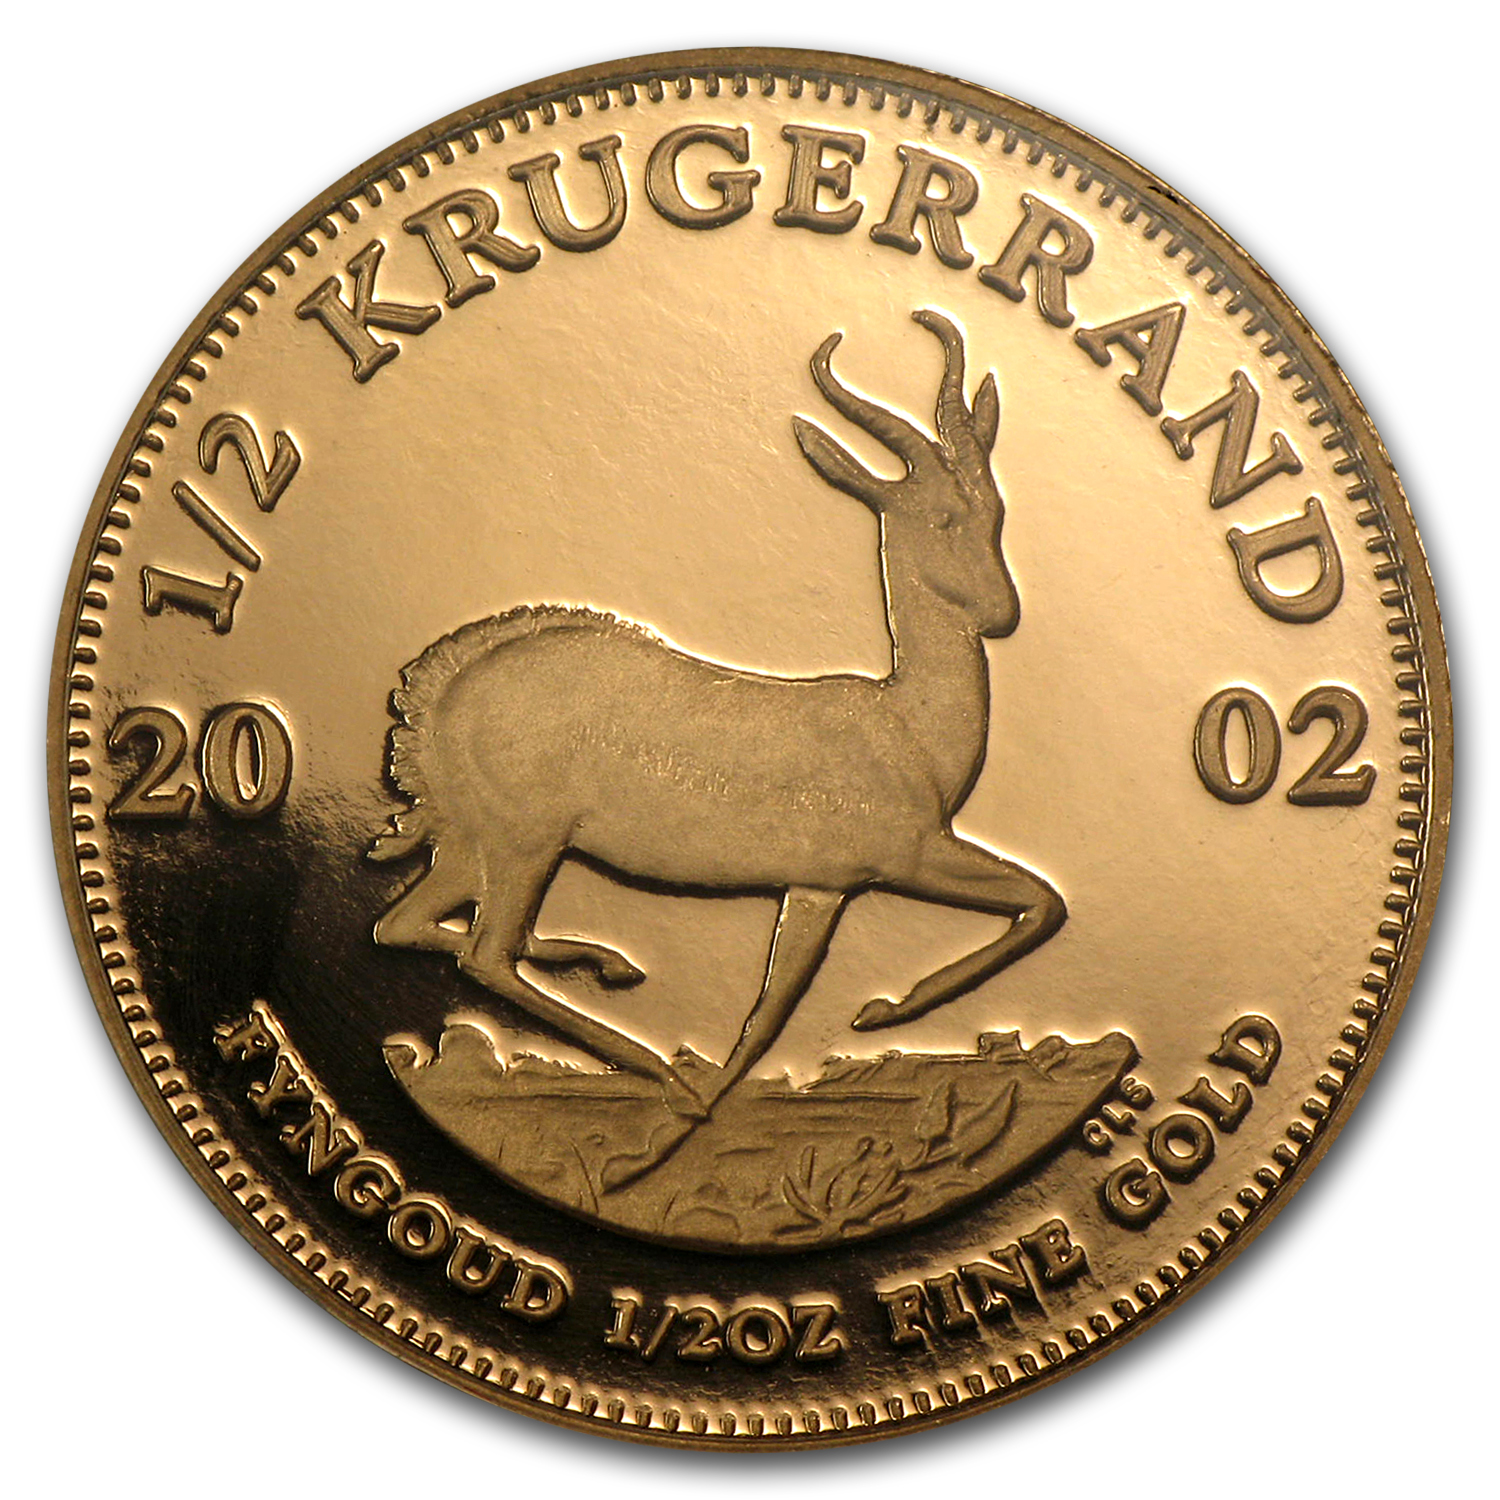 2002 1/2 oz Gold South African Krugerrand (Proof)